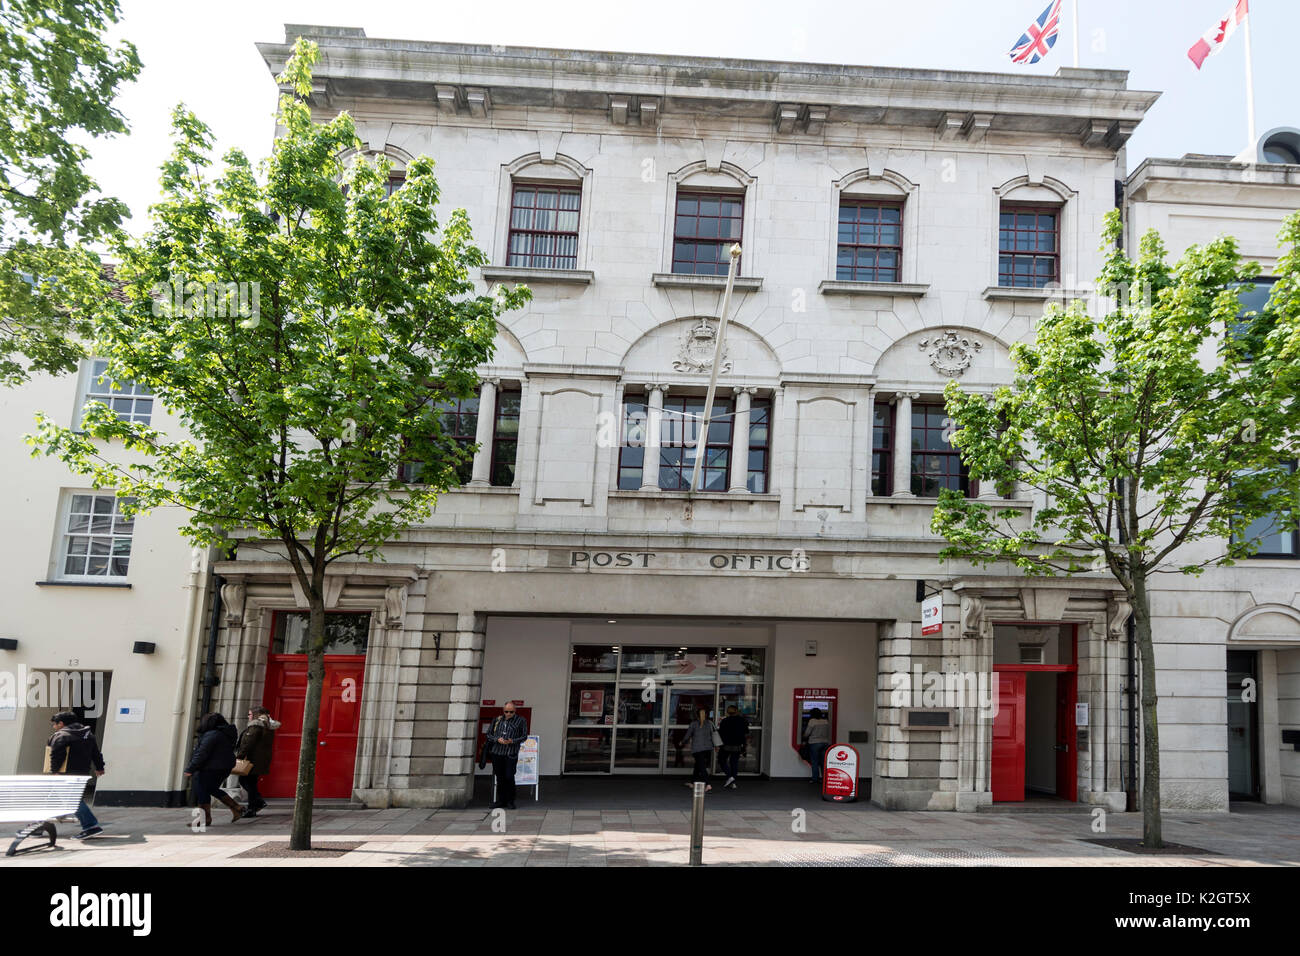 The main post office in St. Helier in Jersey in the Channel Islands , Britain - Stock Image